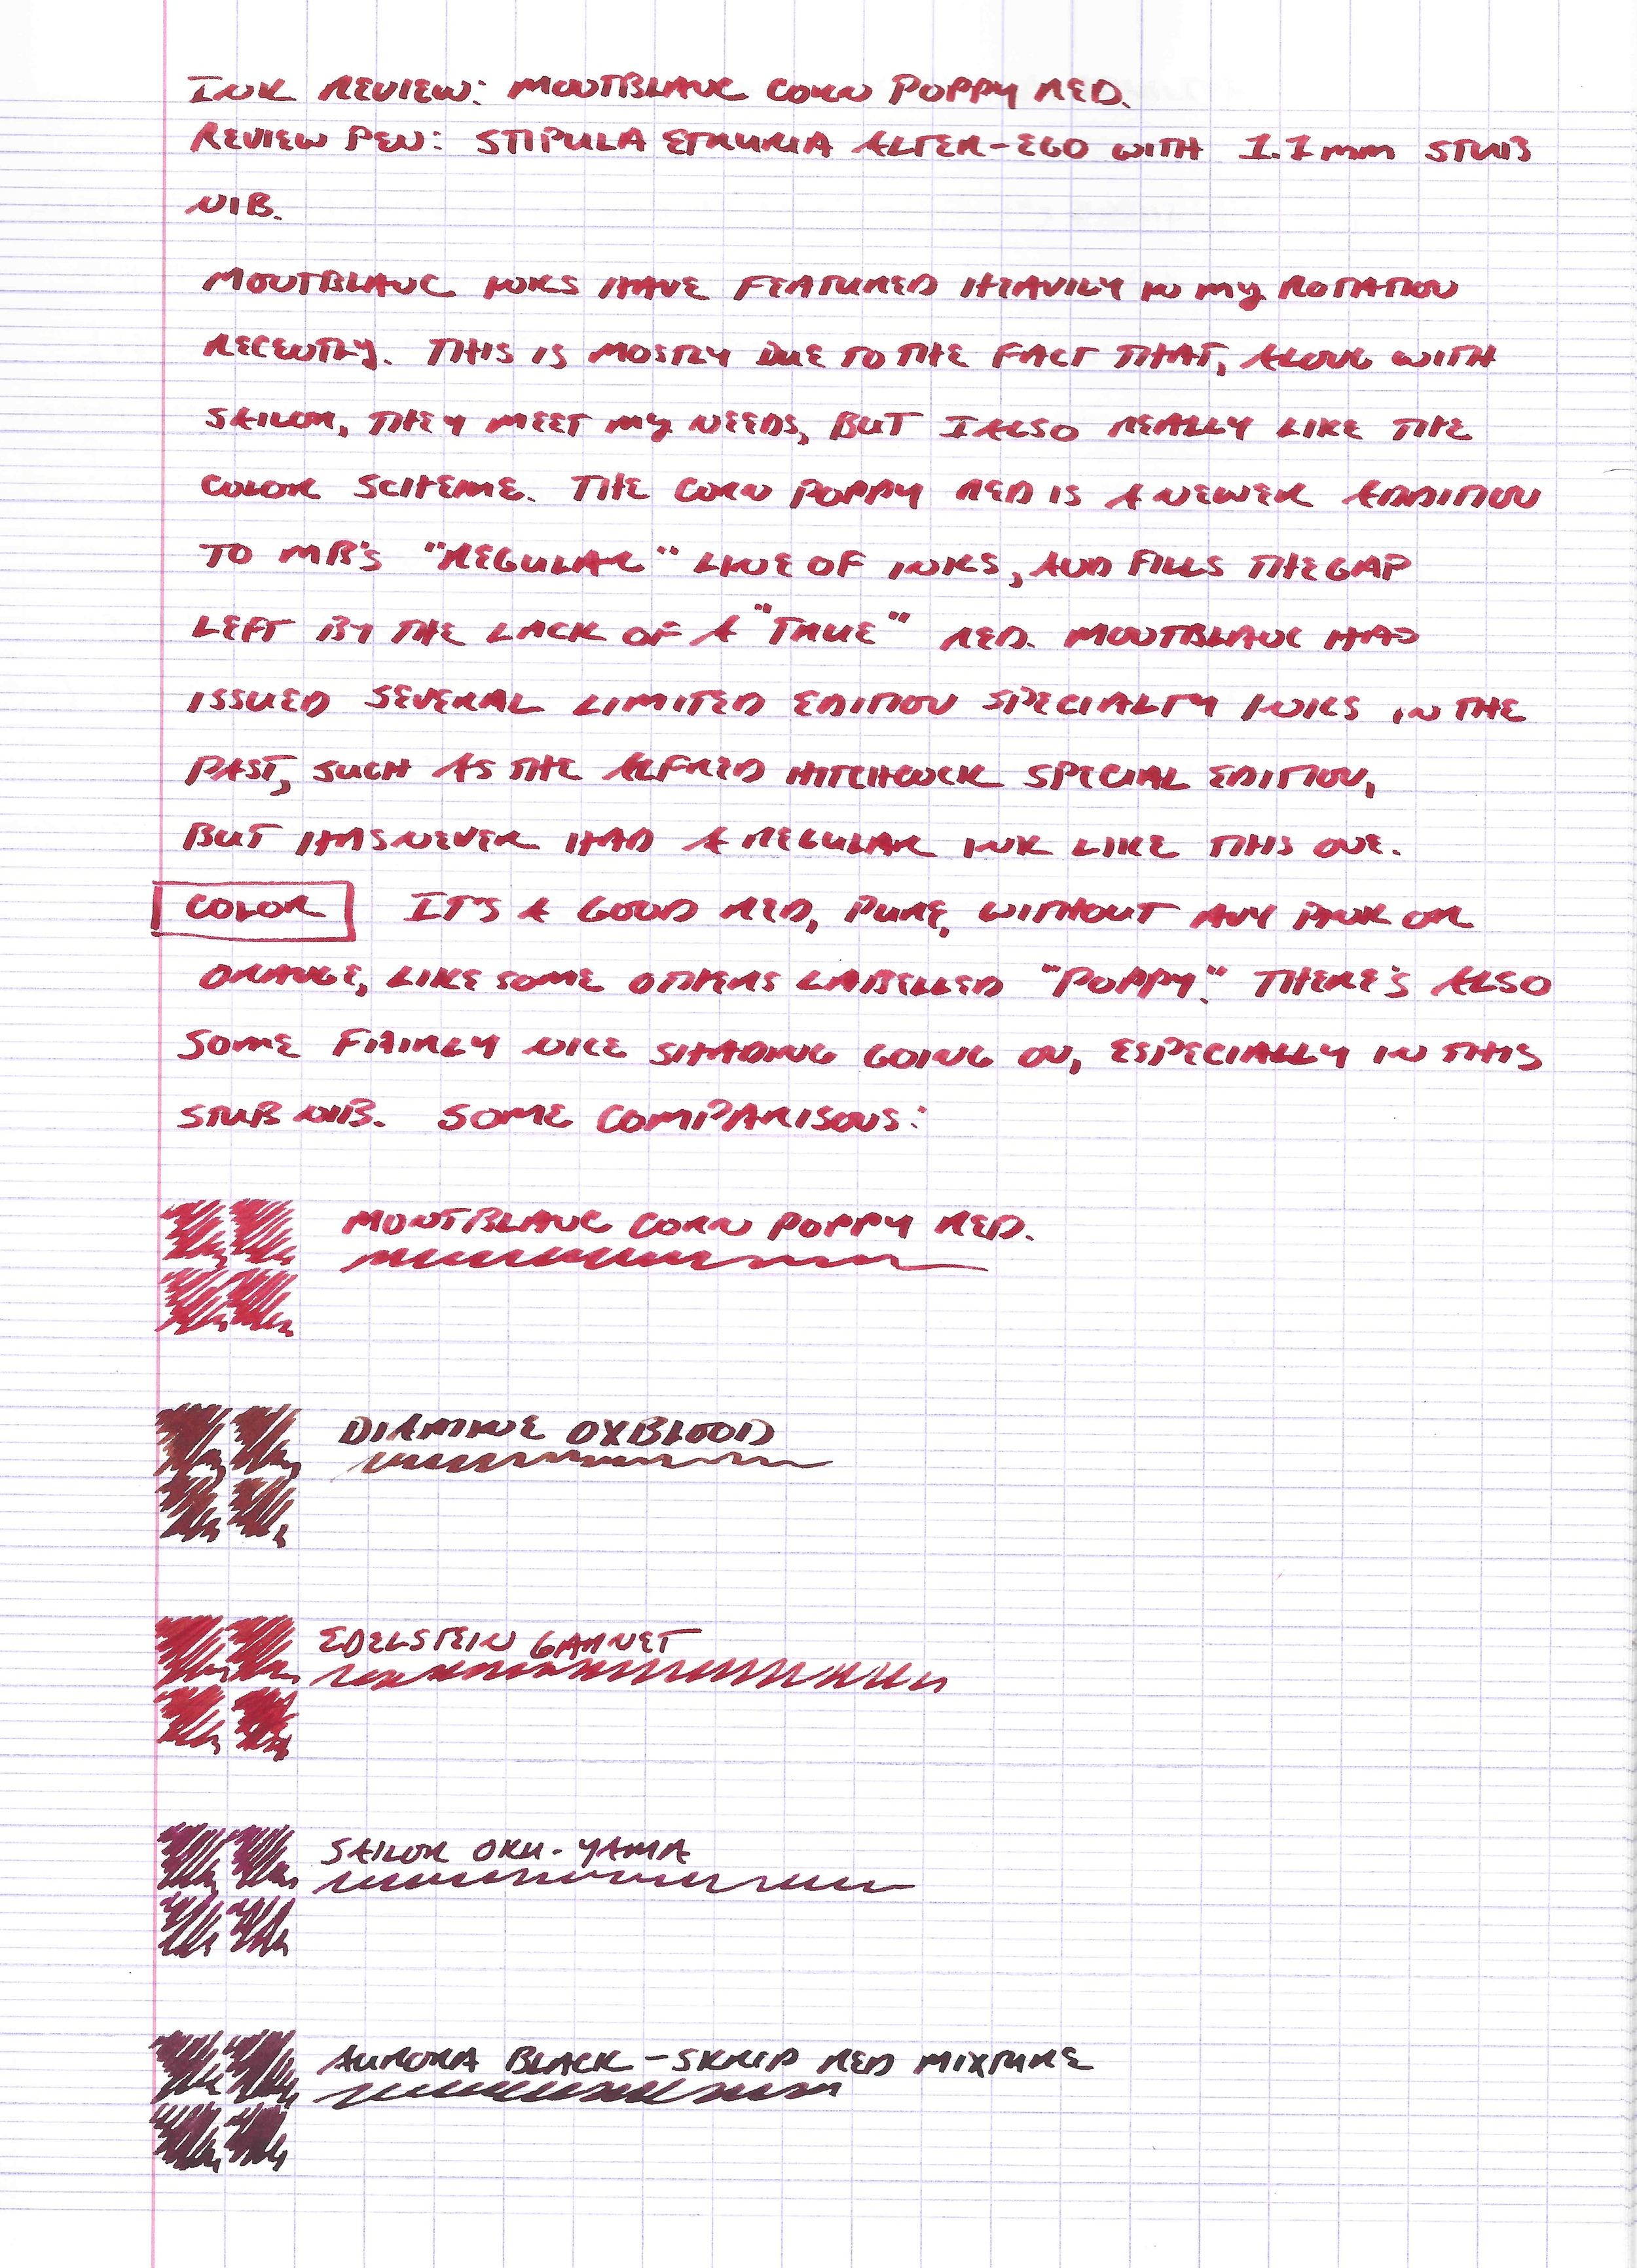 Writing sample with some comparisons on Clairefontaine French-ruled (Seyes) paper.  The closest comparison is the Edelstein Garnet, which is a slightly darker color.